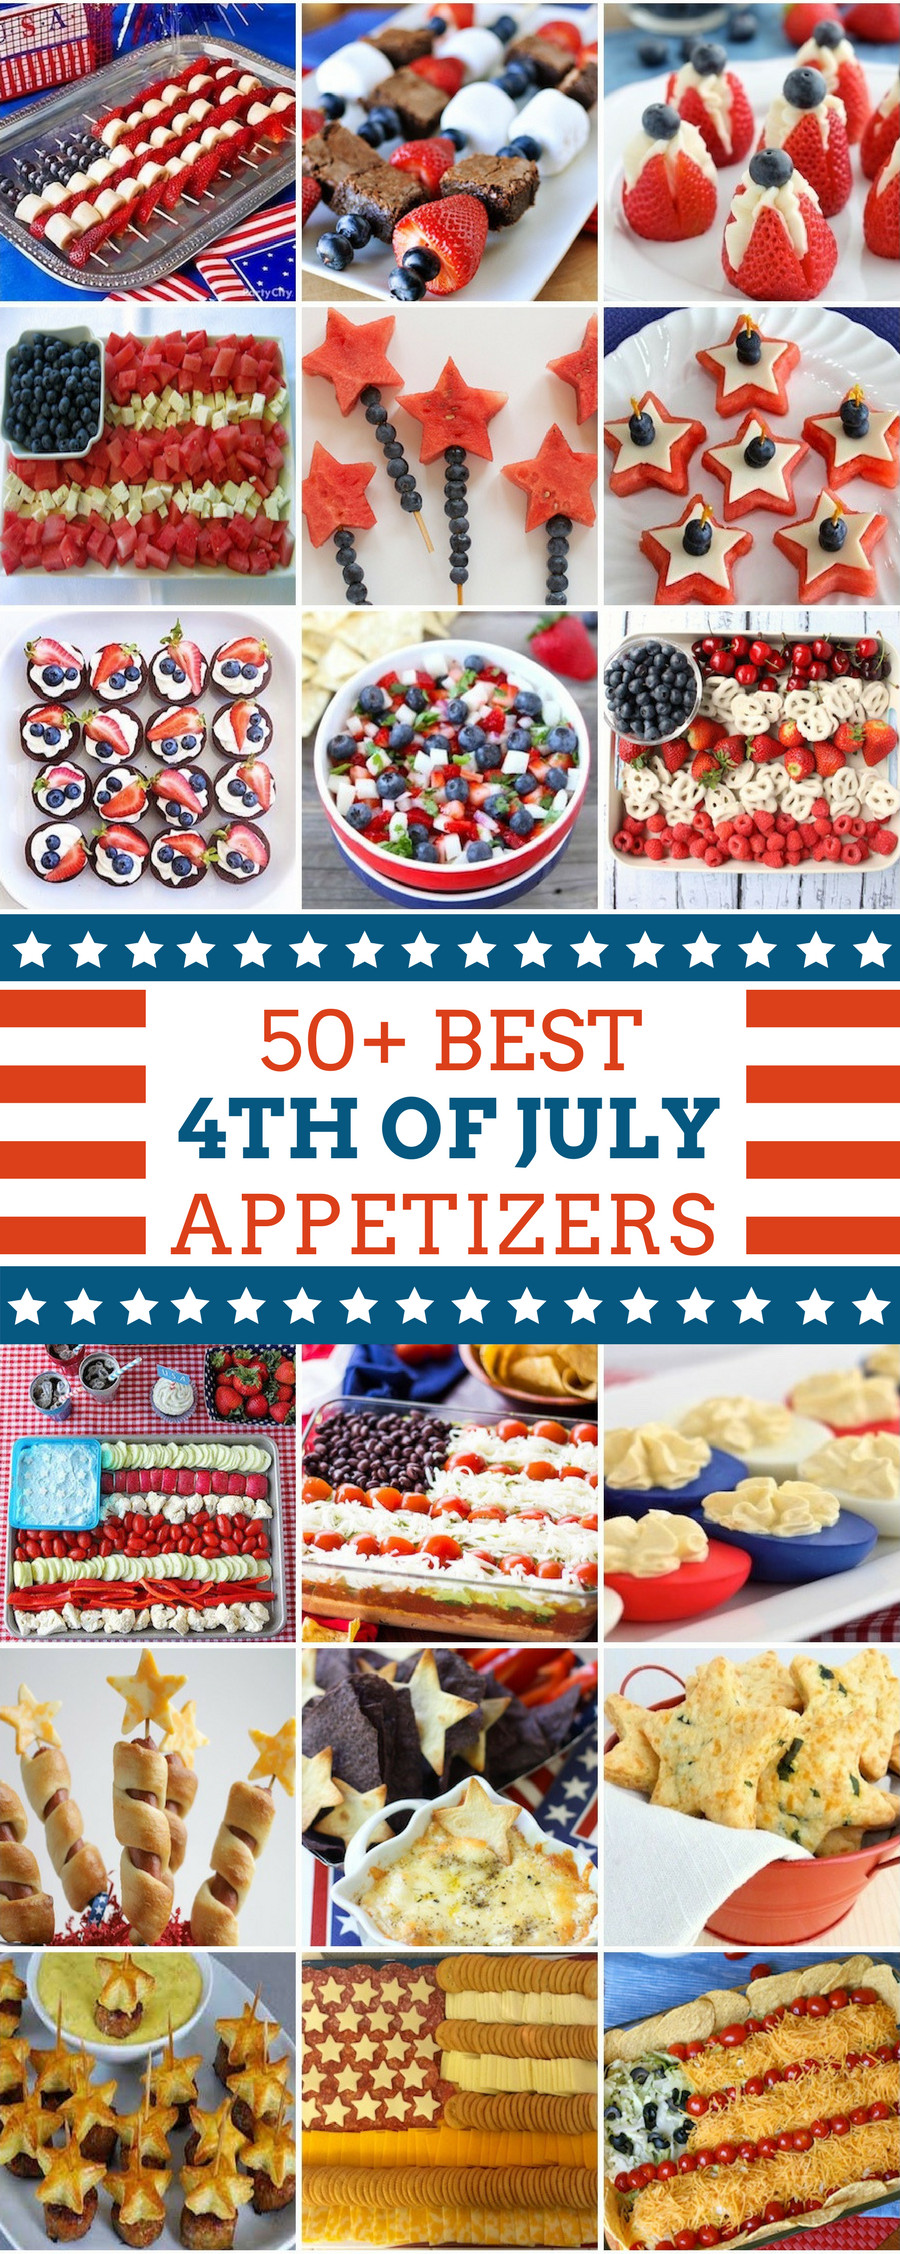 4Th Of July Party Appetizers  50 Best 4th of July Appetizers Prudent Penny Pincher